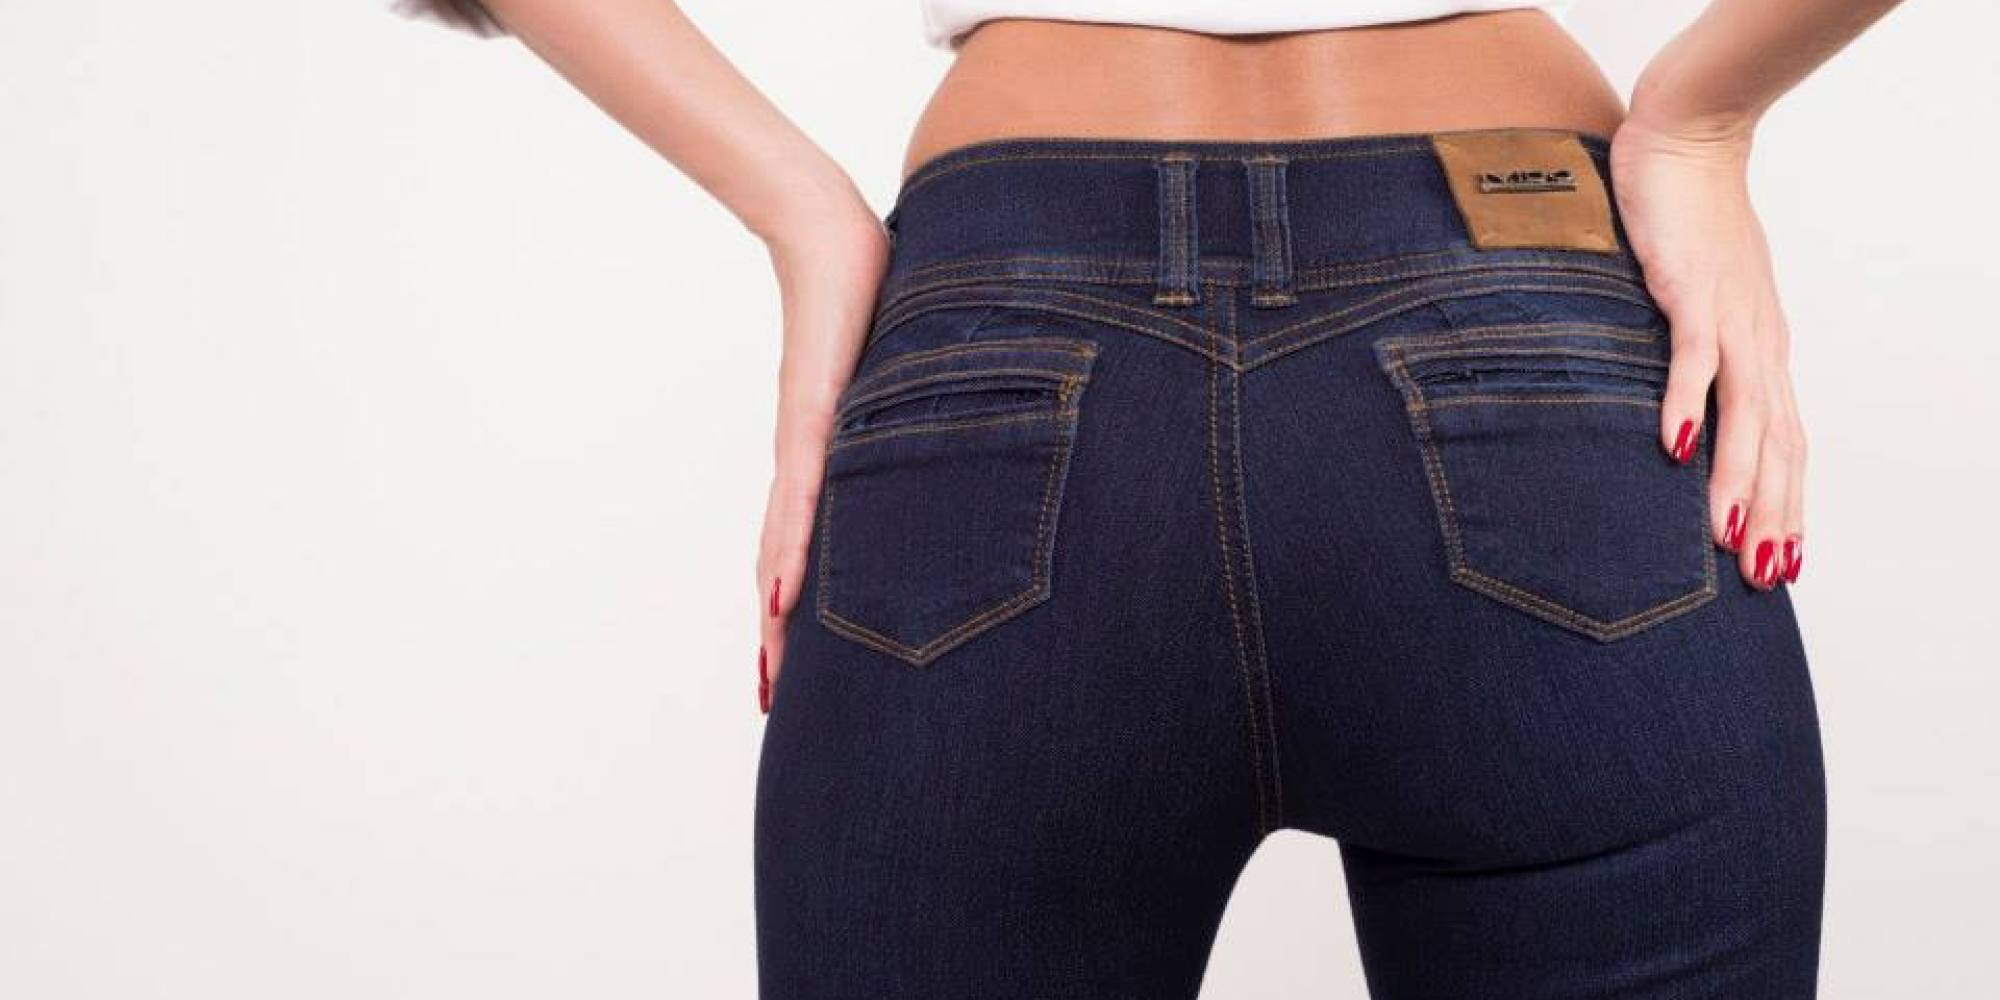 push up jeans are a thing that exist photos. Black Bedroom Furniture Sets. Home Design Ideas